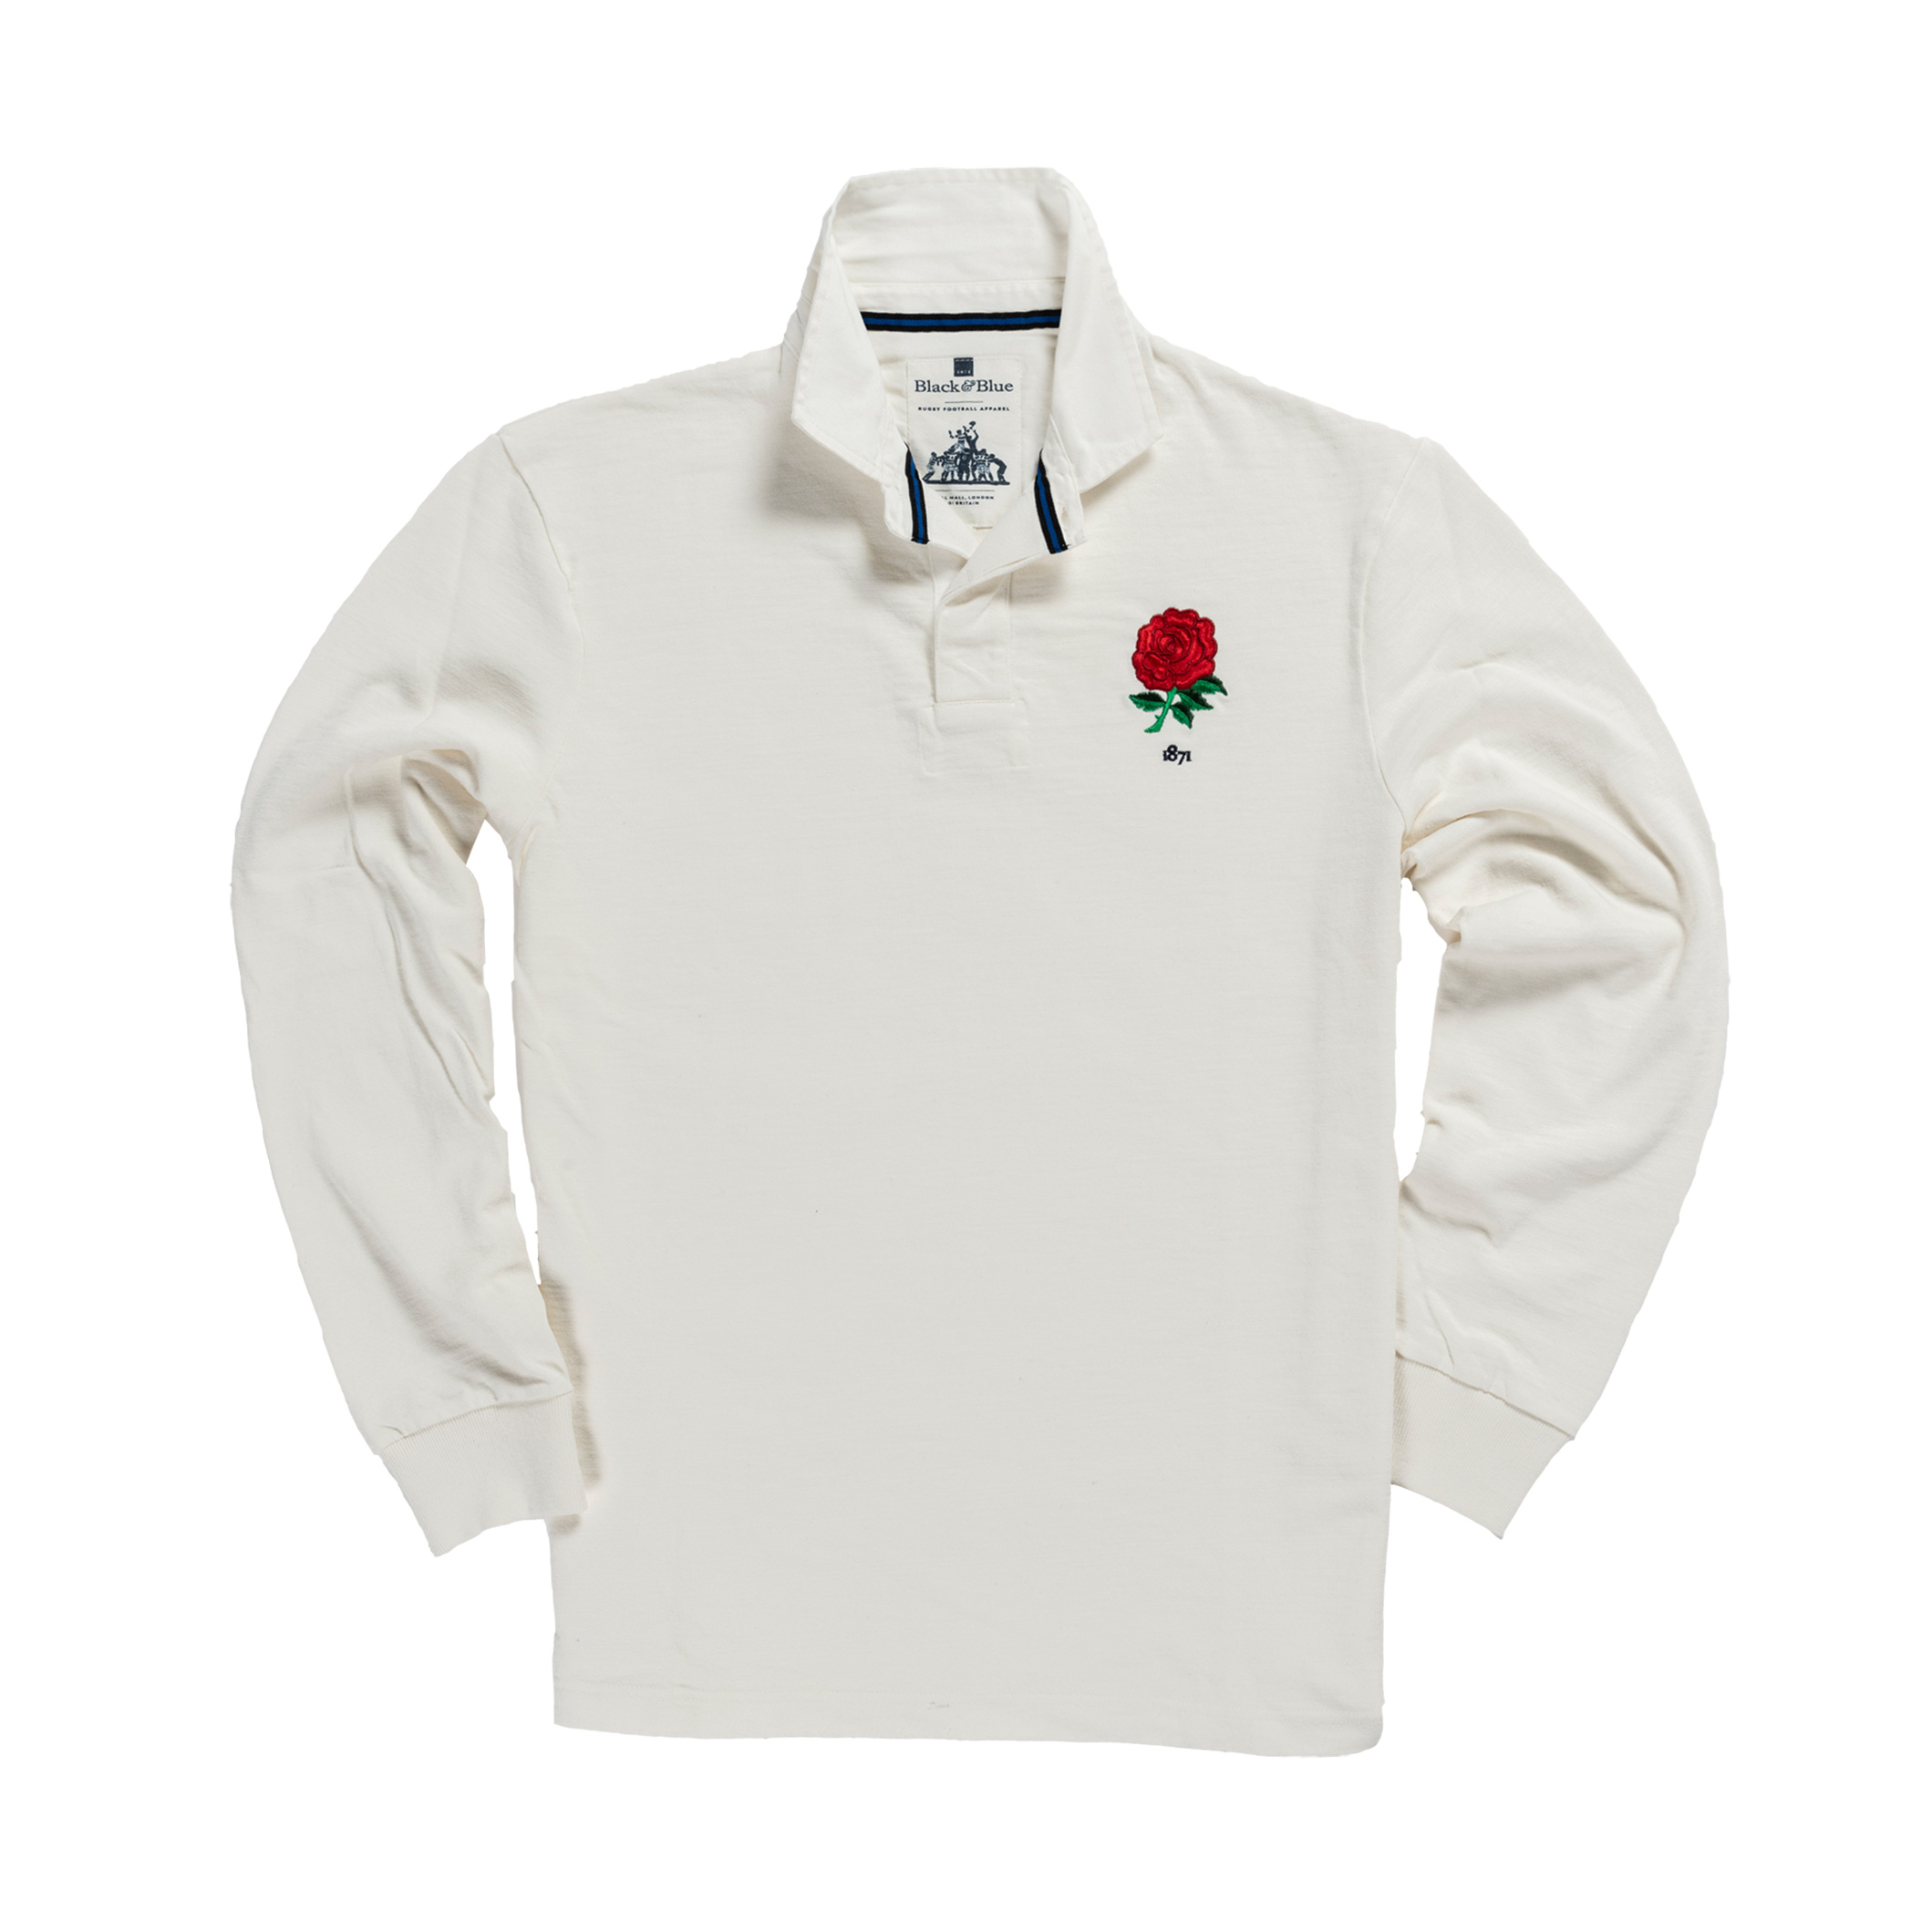 England 1871 Vintage Rugby Shirt_Front